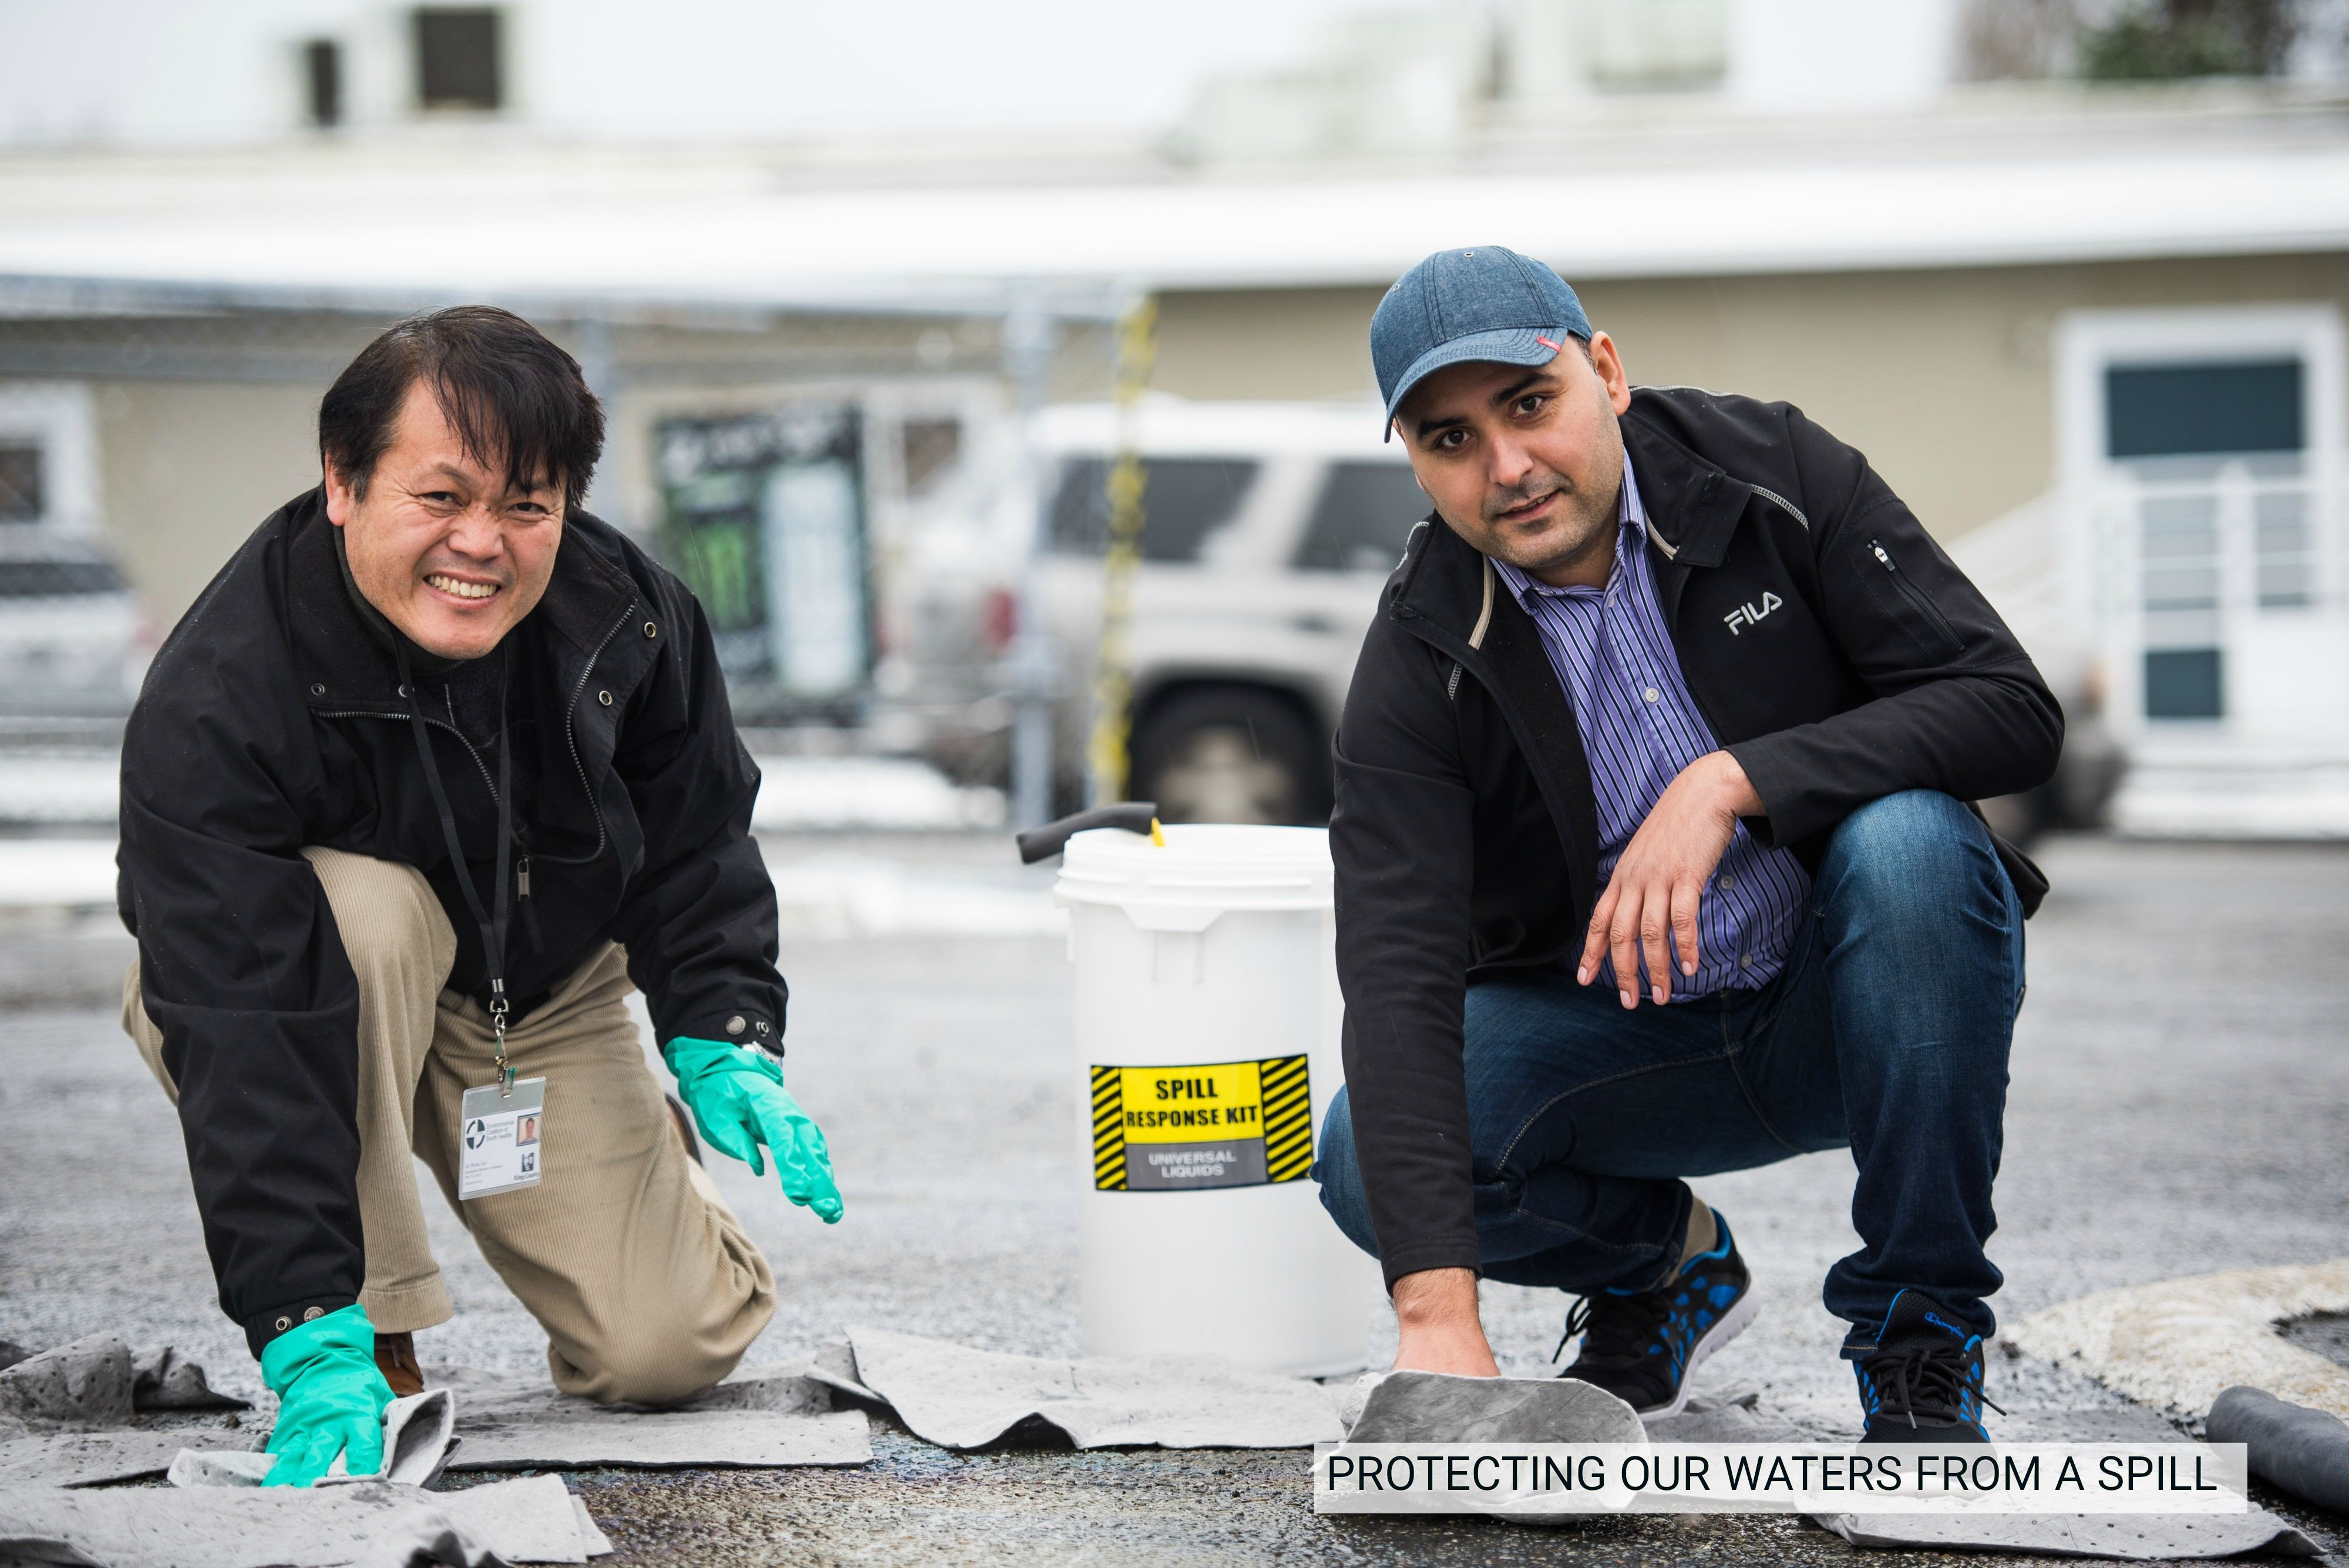 Two men cleaning up an oil spill with a spill kit